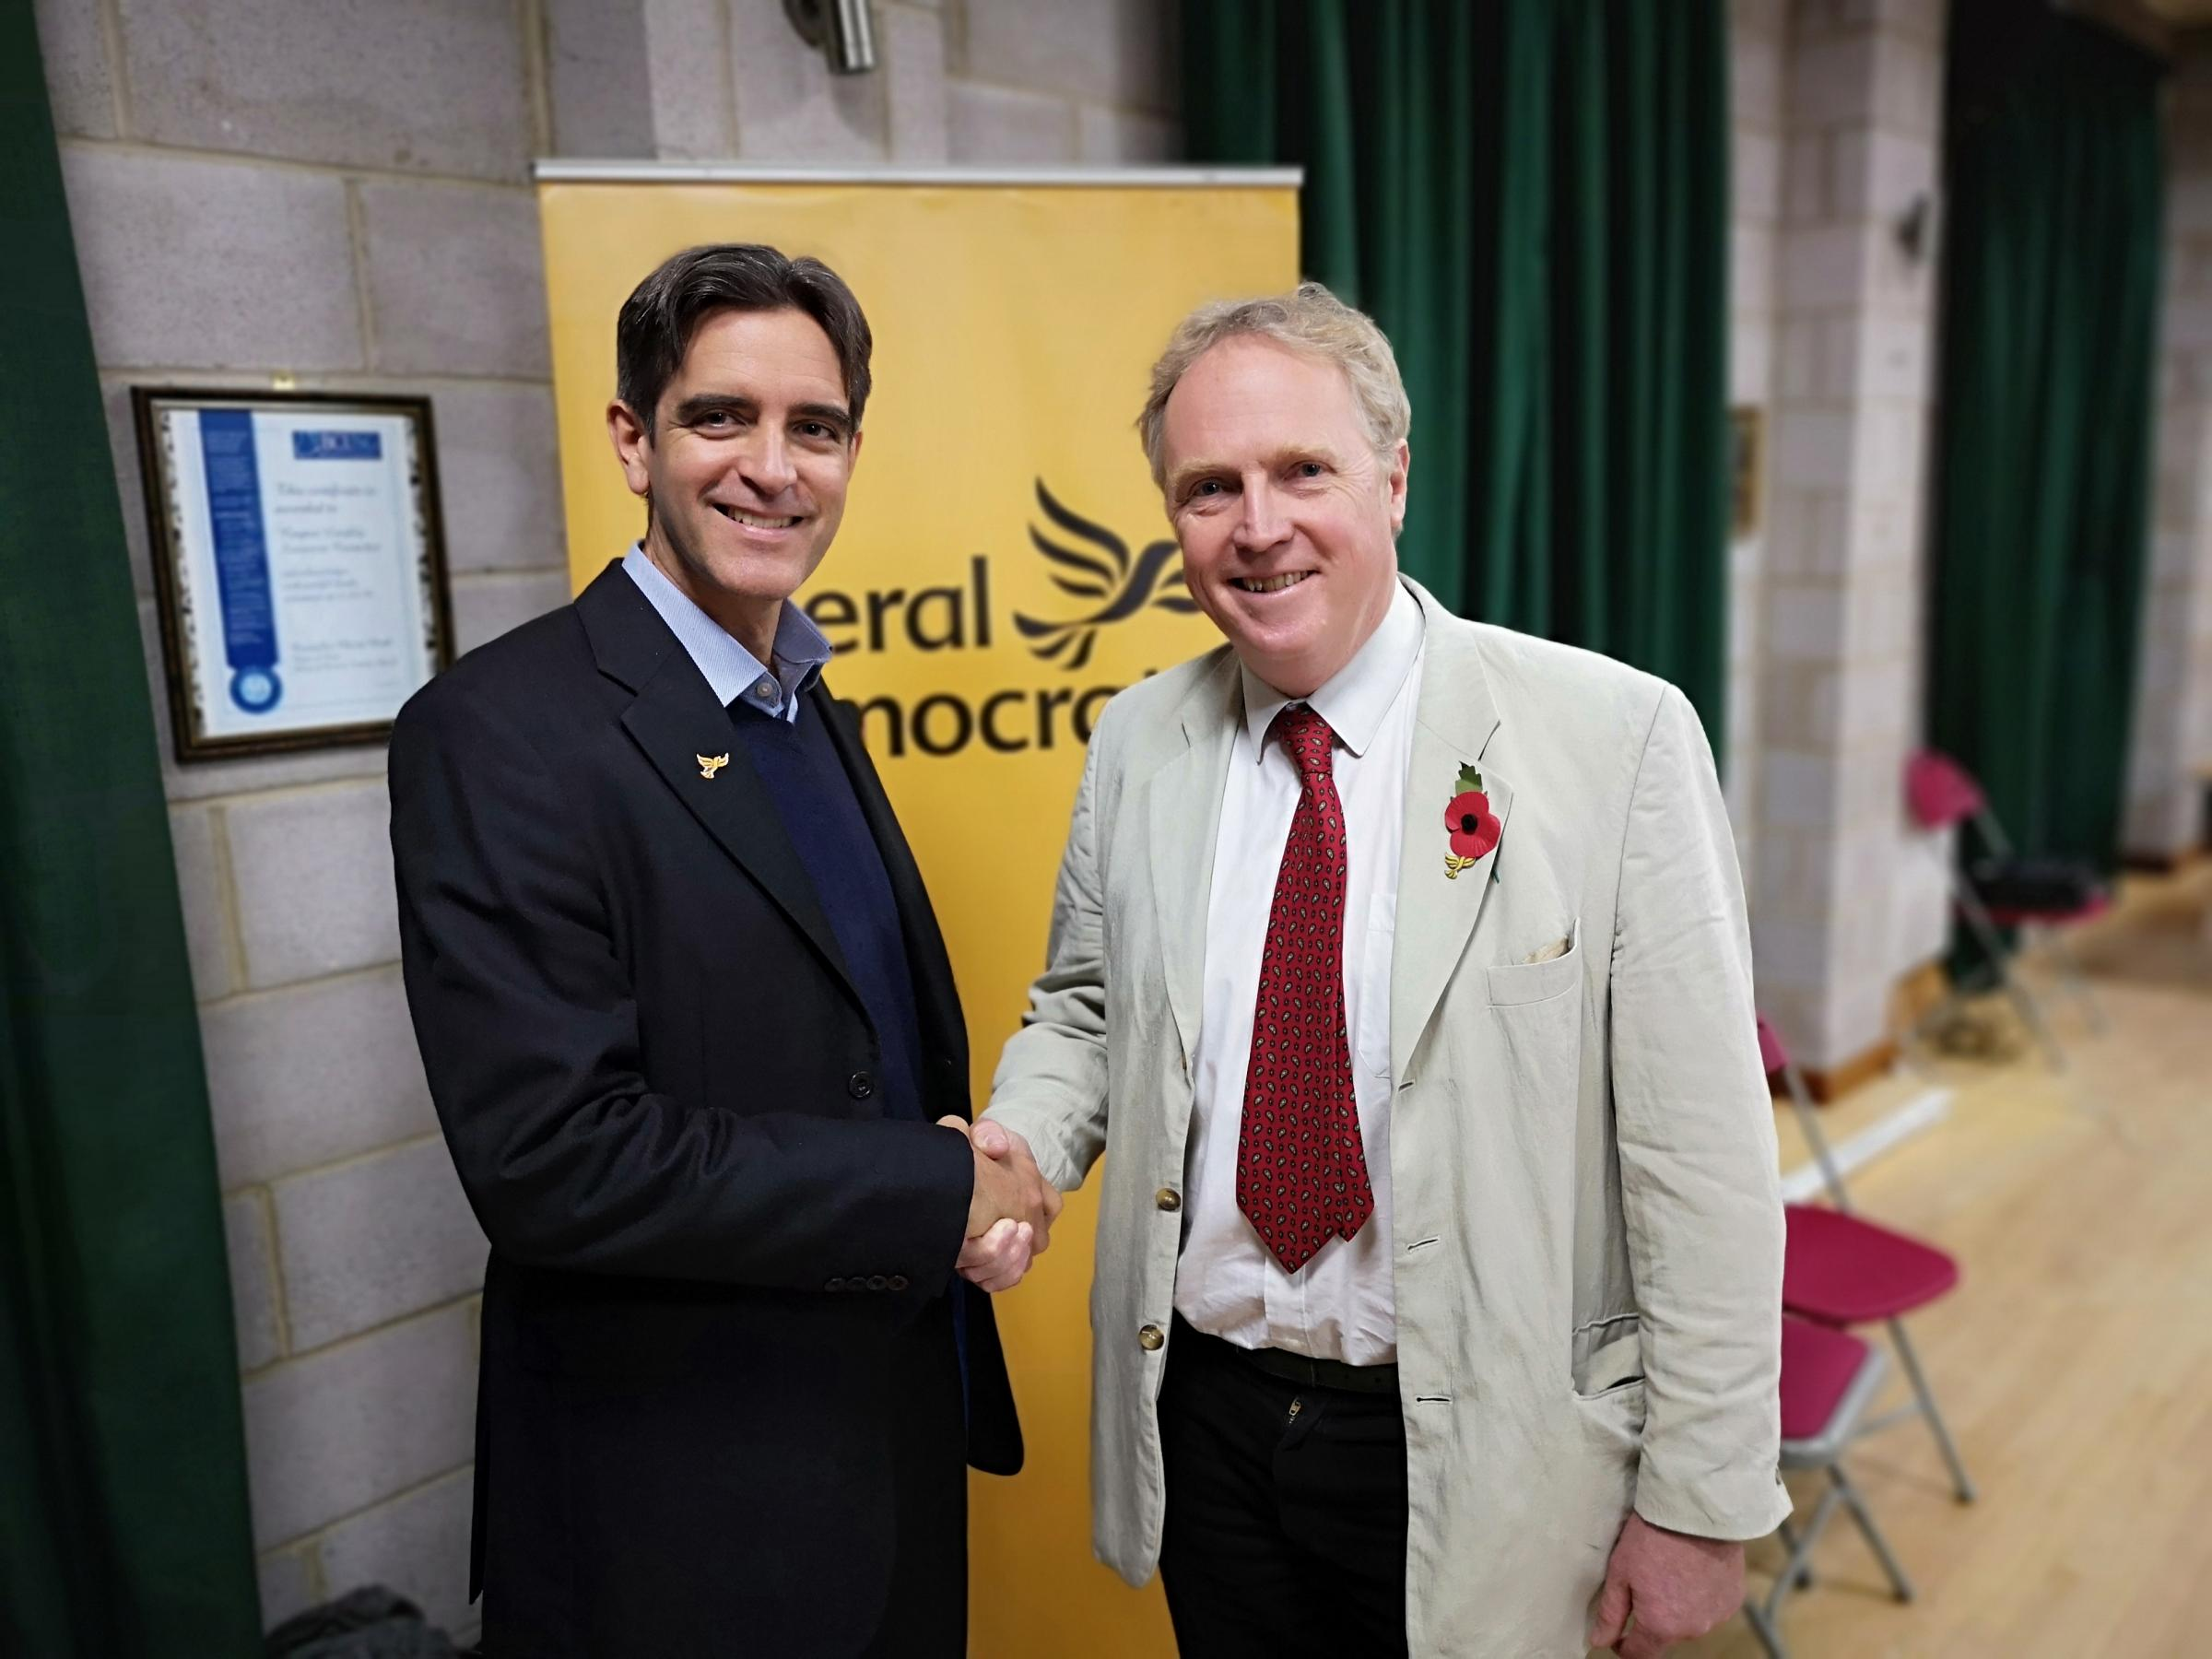 New Liberal Democrat prospective parliamentary candidate Brian Mathew (right) with North Wiltshire Liberal Democrats chair, Matt Bragg